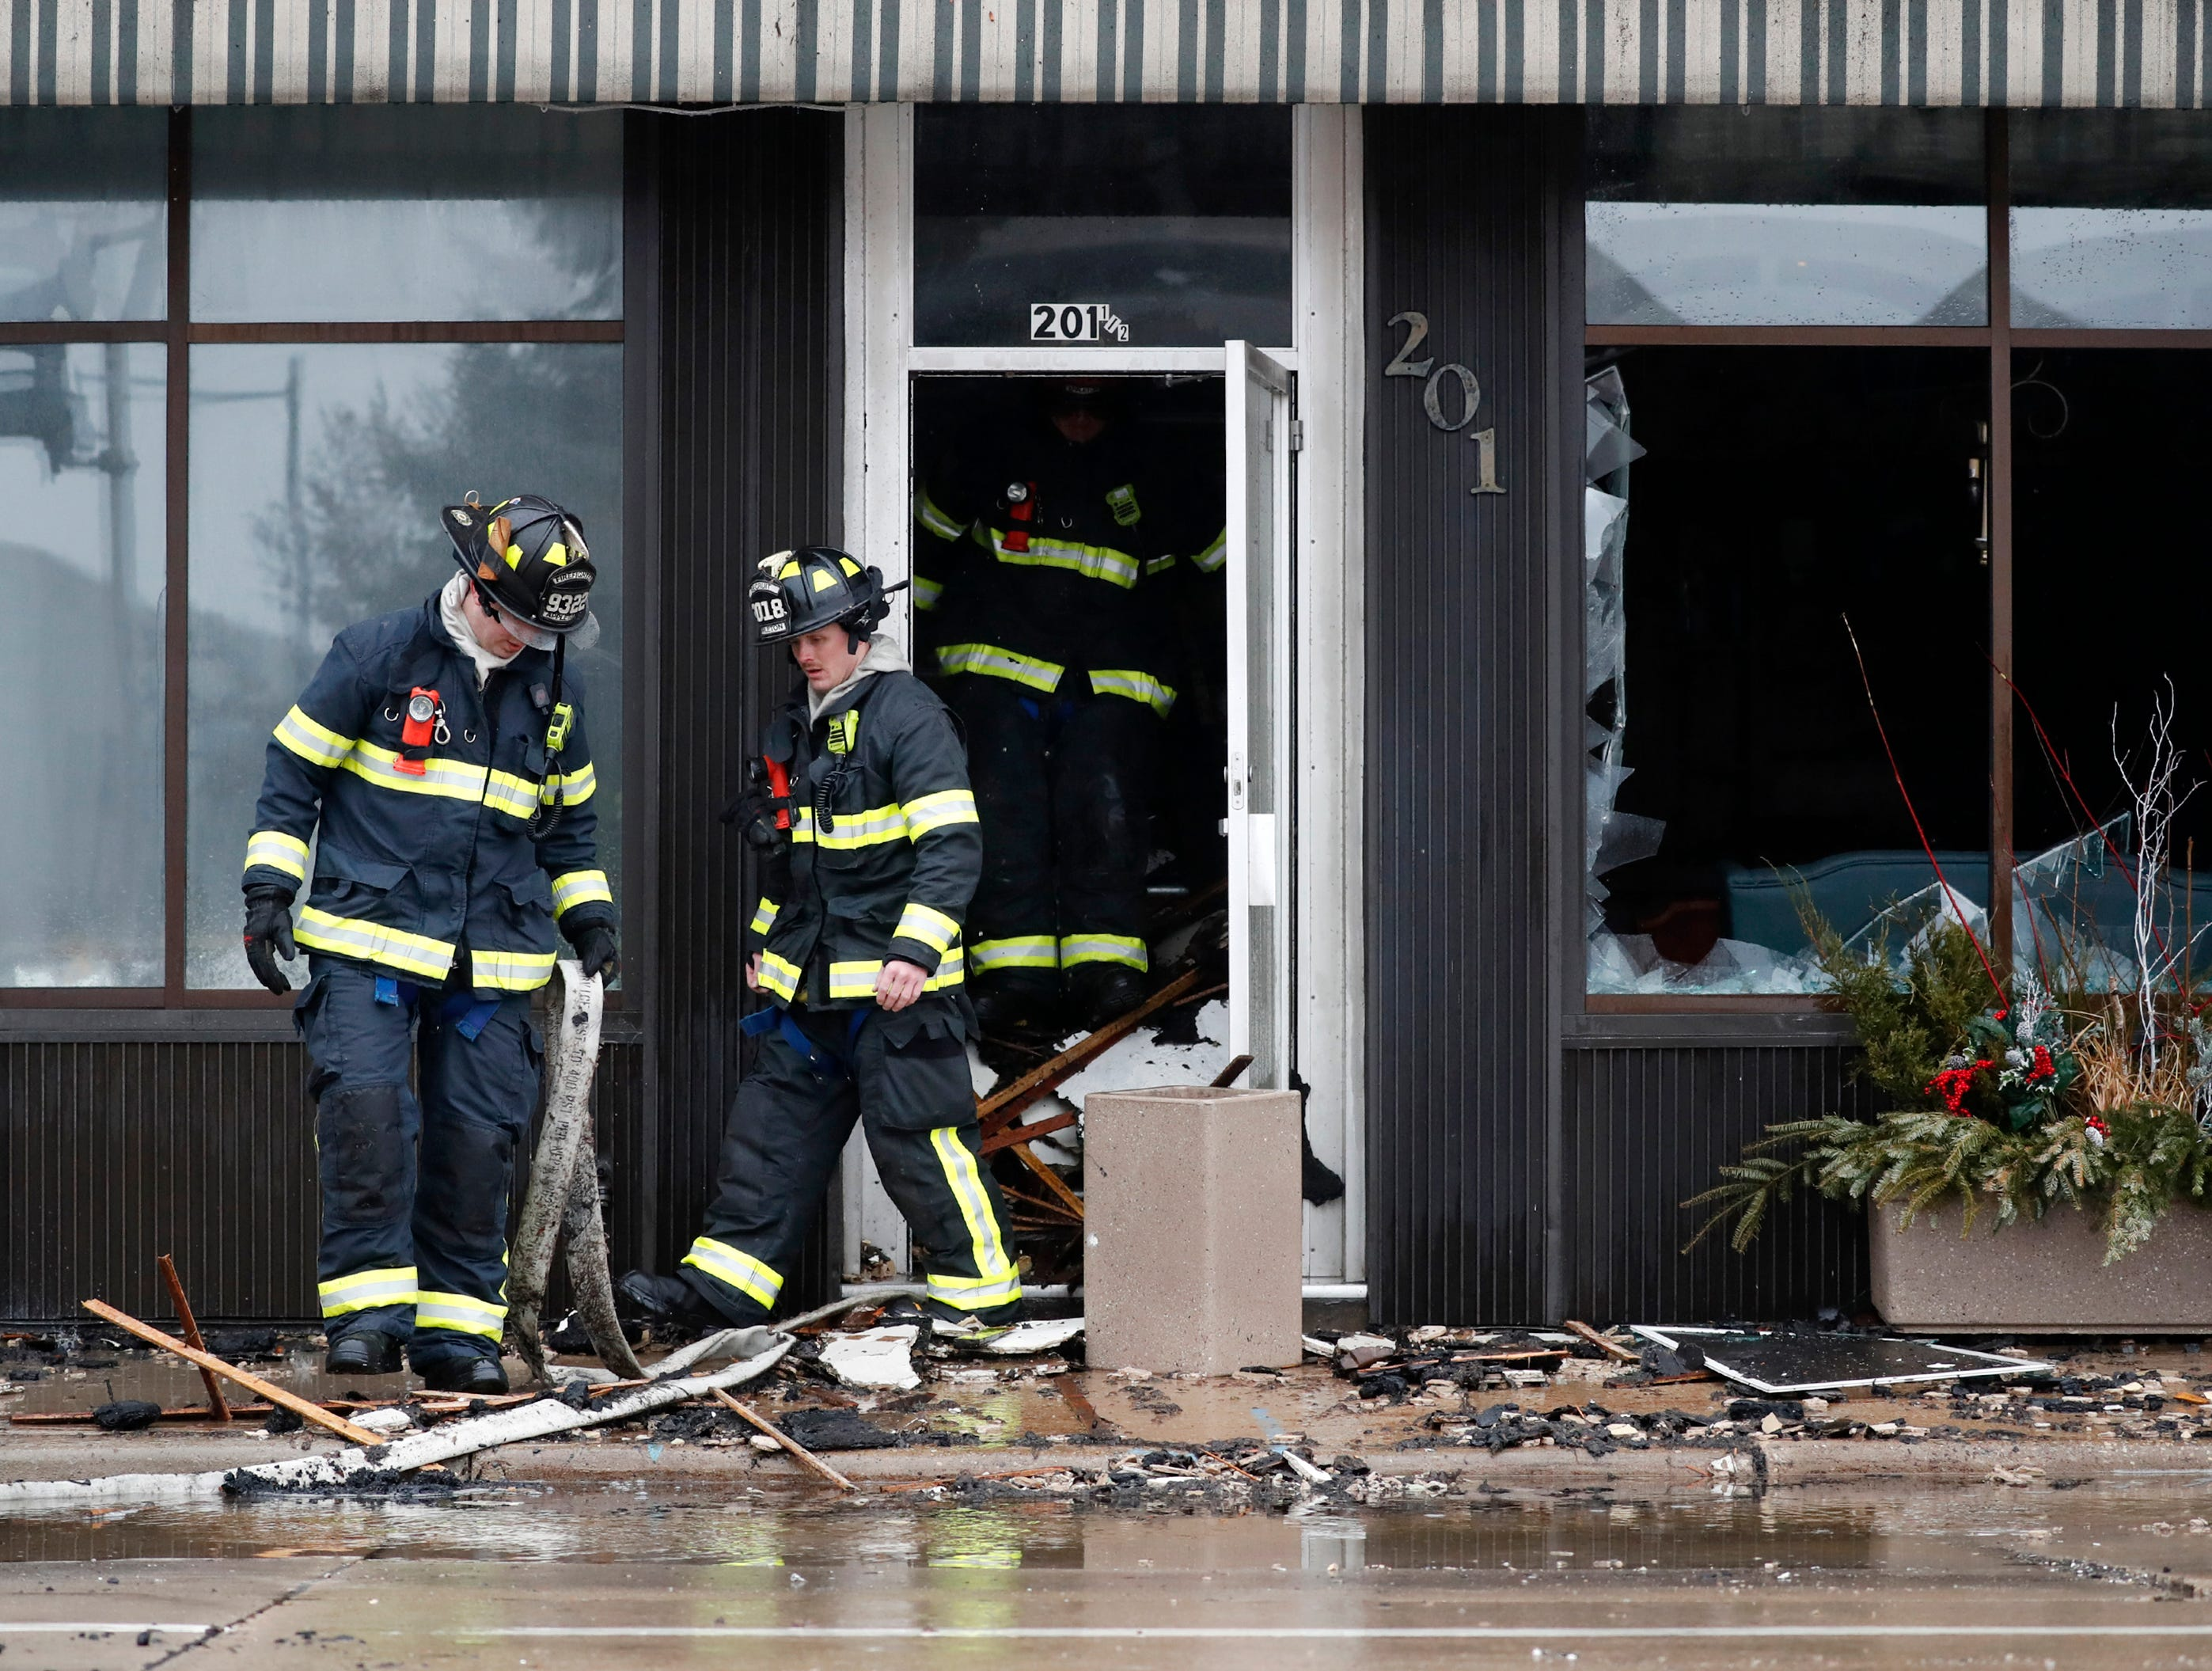 Firefighters pull a hose out of the stairwell after working to put out a structure fire in downtown Appleton on the corner of West Washington and North Appleton Streets Wednesday, March 13, 2019, in Appleton, Wis. Danny Damiani/USA TODAY NETWORK-Wisconsin